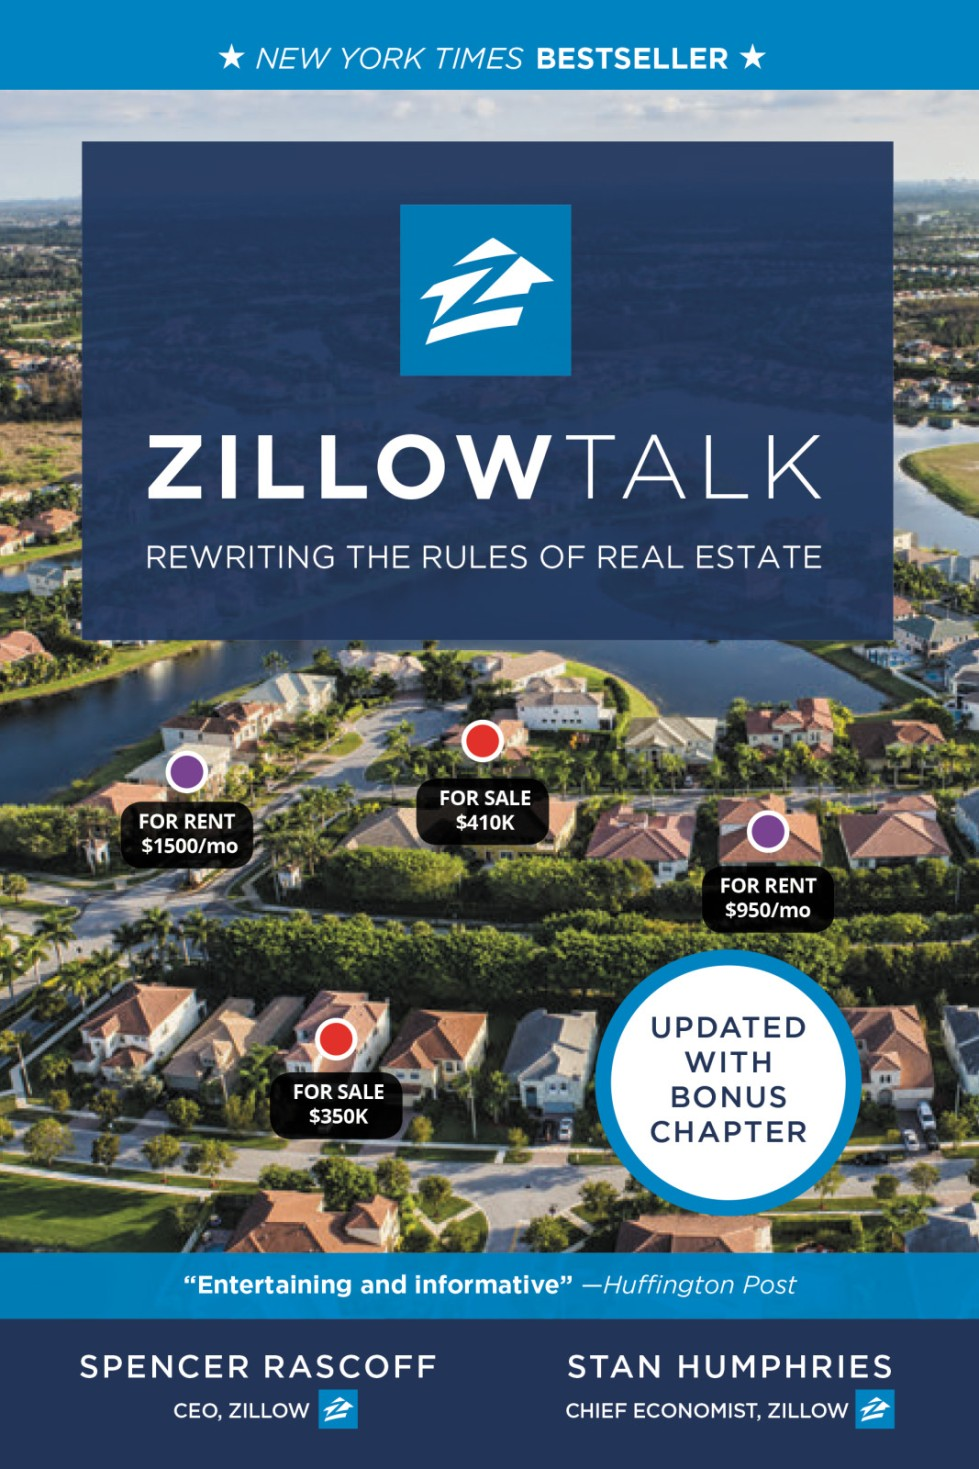 jpegZillowTalk_TP-d77129